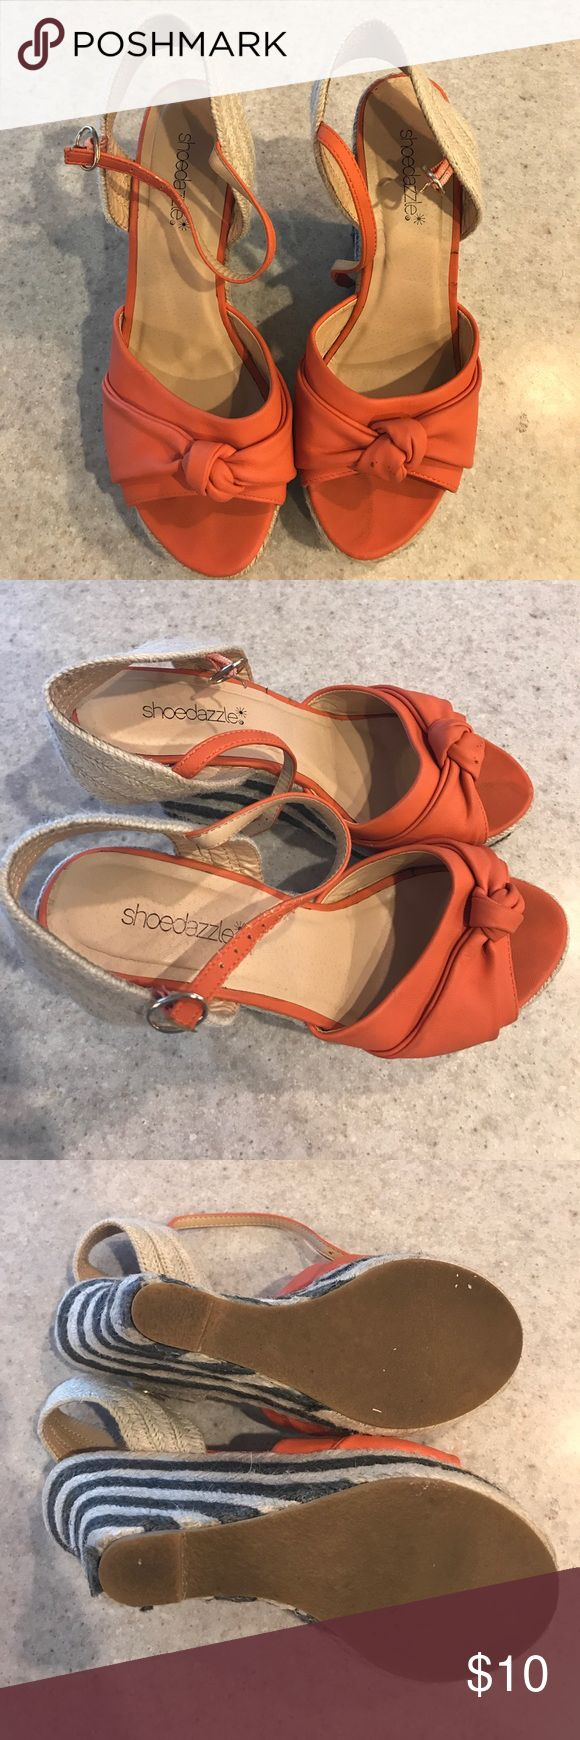 Shoe Dazzle Orange Wedges Barely worn, in good condition. Shoe Dazzle Shoes Wedges